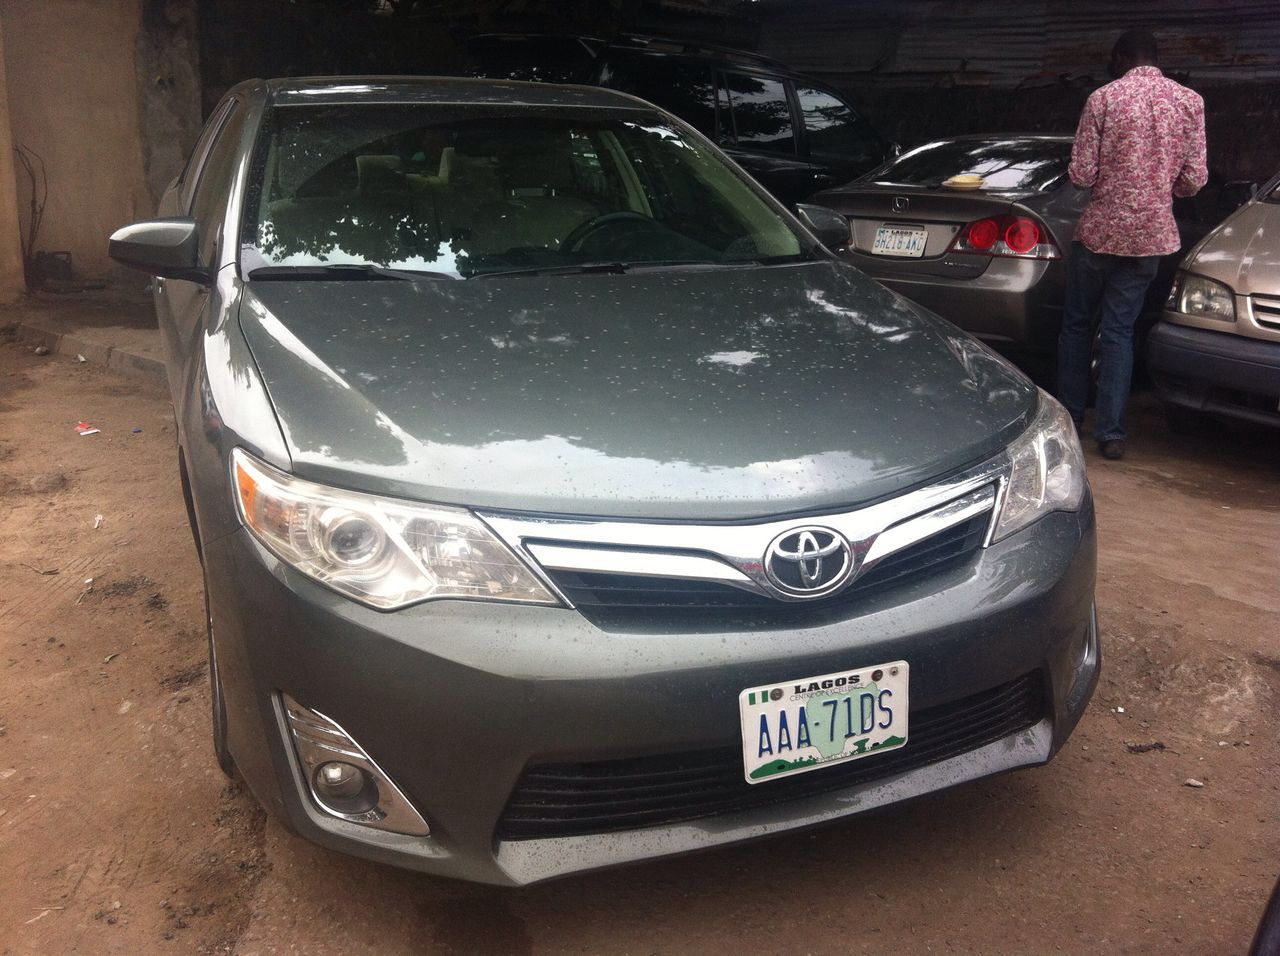 brand new toyota camry for sale corolla altis price registered 2013 model neat autos